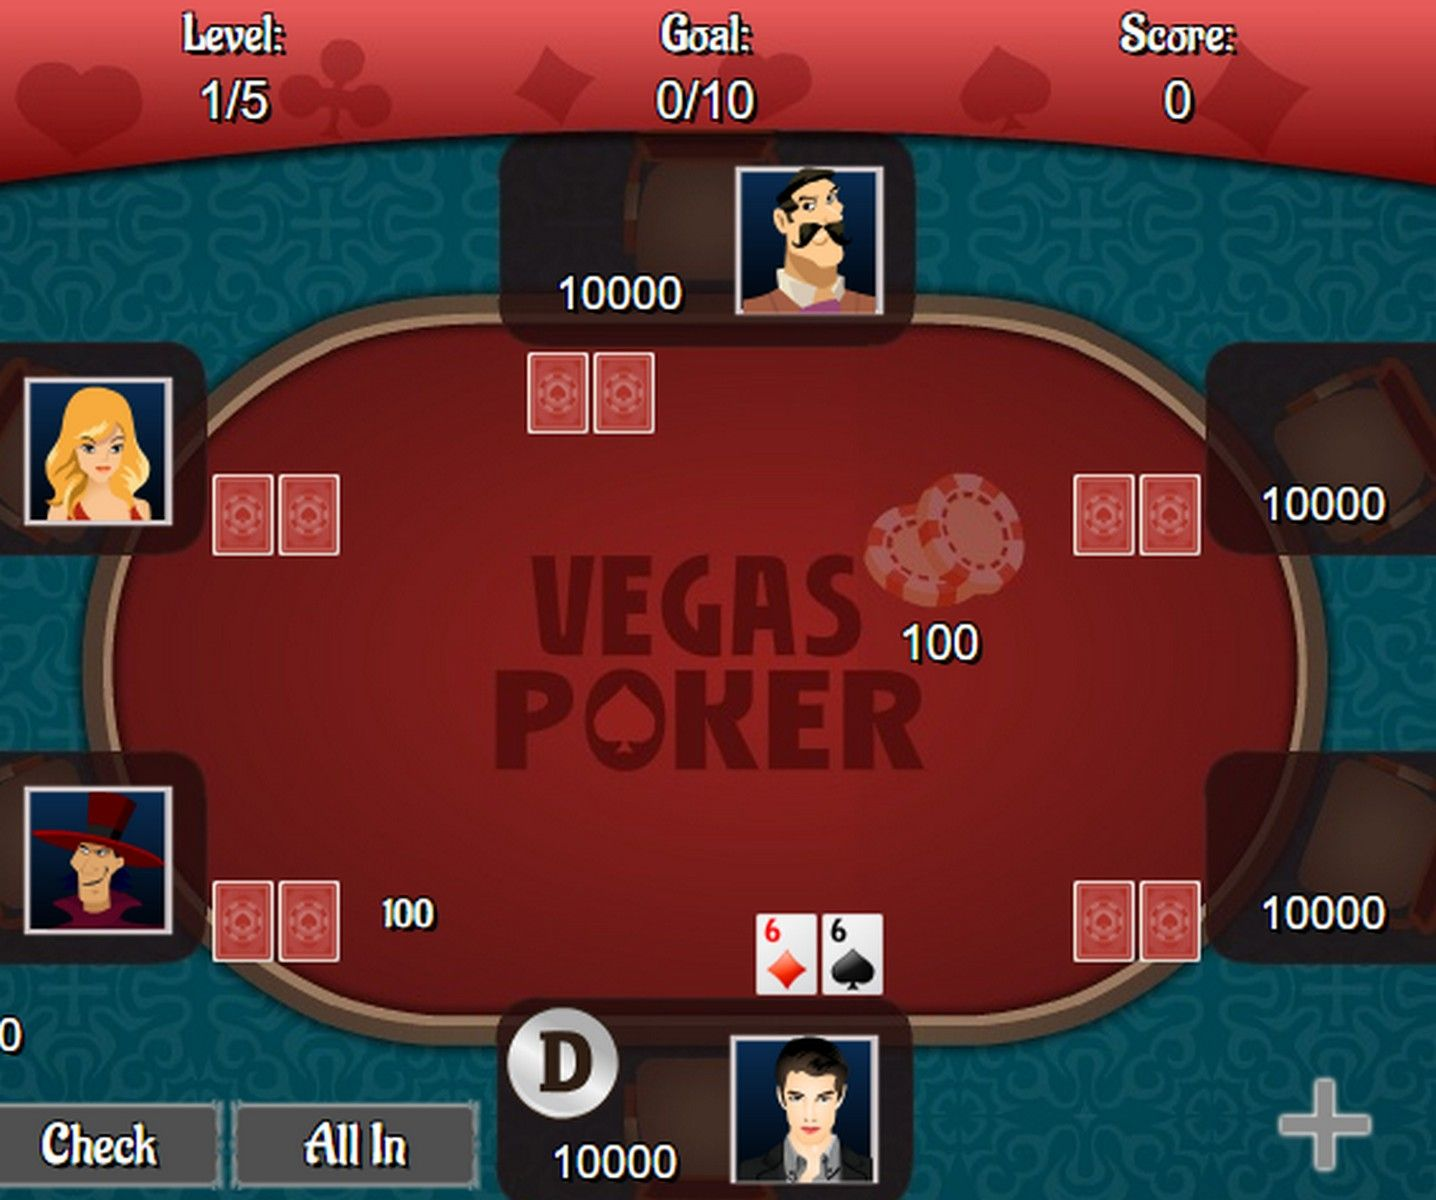 Play Texas Hold'em poker against 5 computer opponents. Try